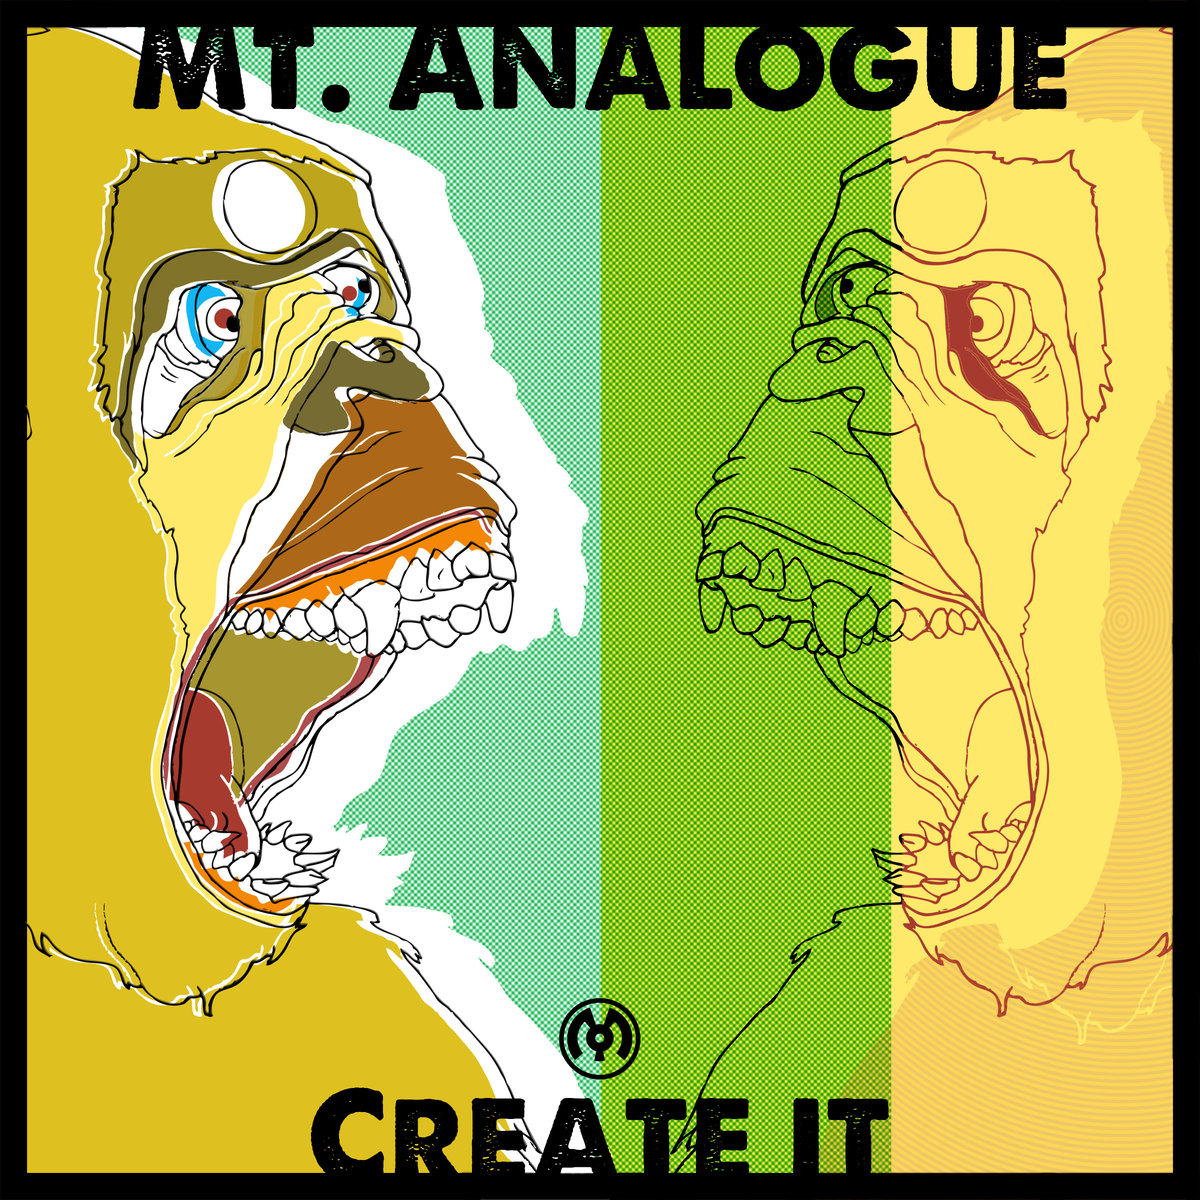 Mt. Analogue - Balance @ 'Create It' album (electronic, dubstep)